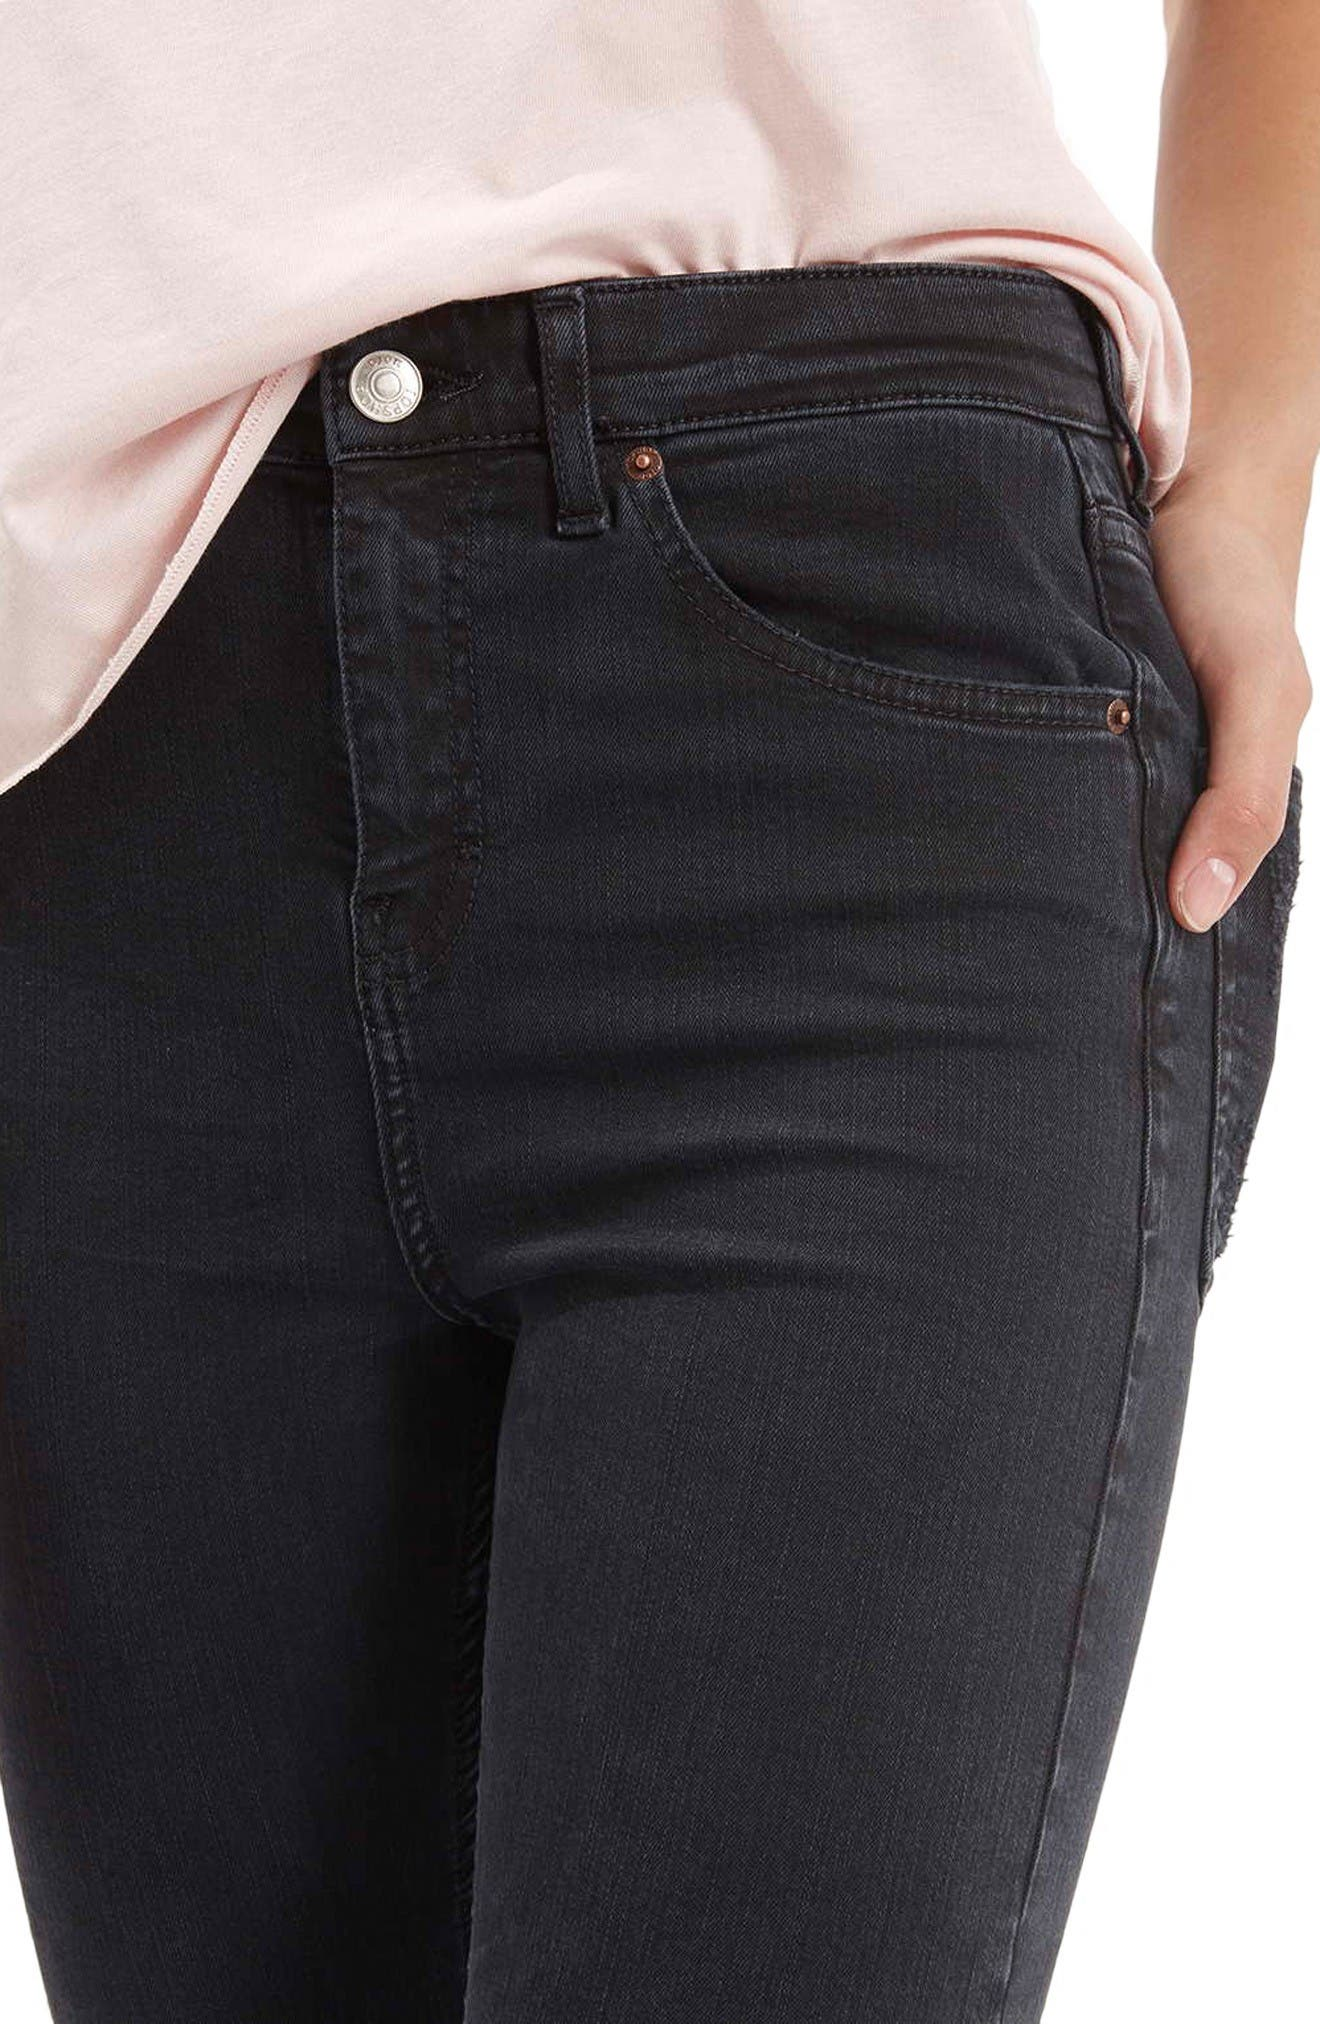 TOPSHOP,                             Moto 'Jamie' Ripped Skinny Jeans,                             Alternate thumbnail 5, color,                             001